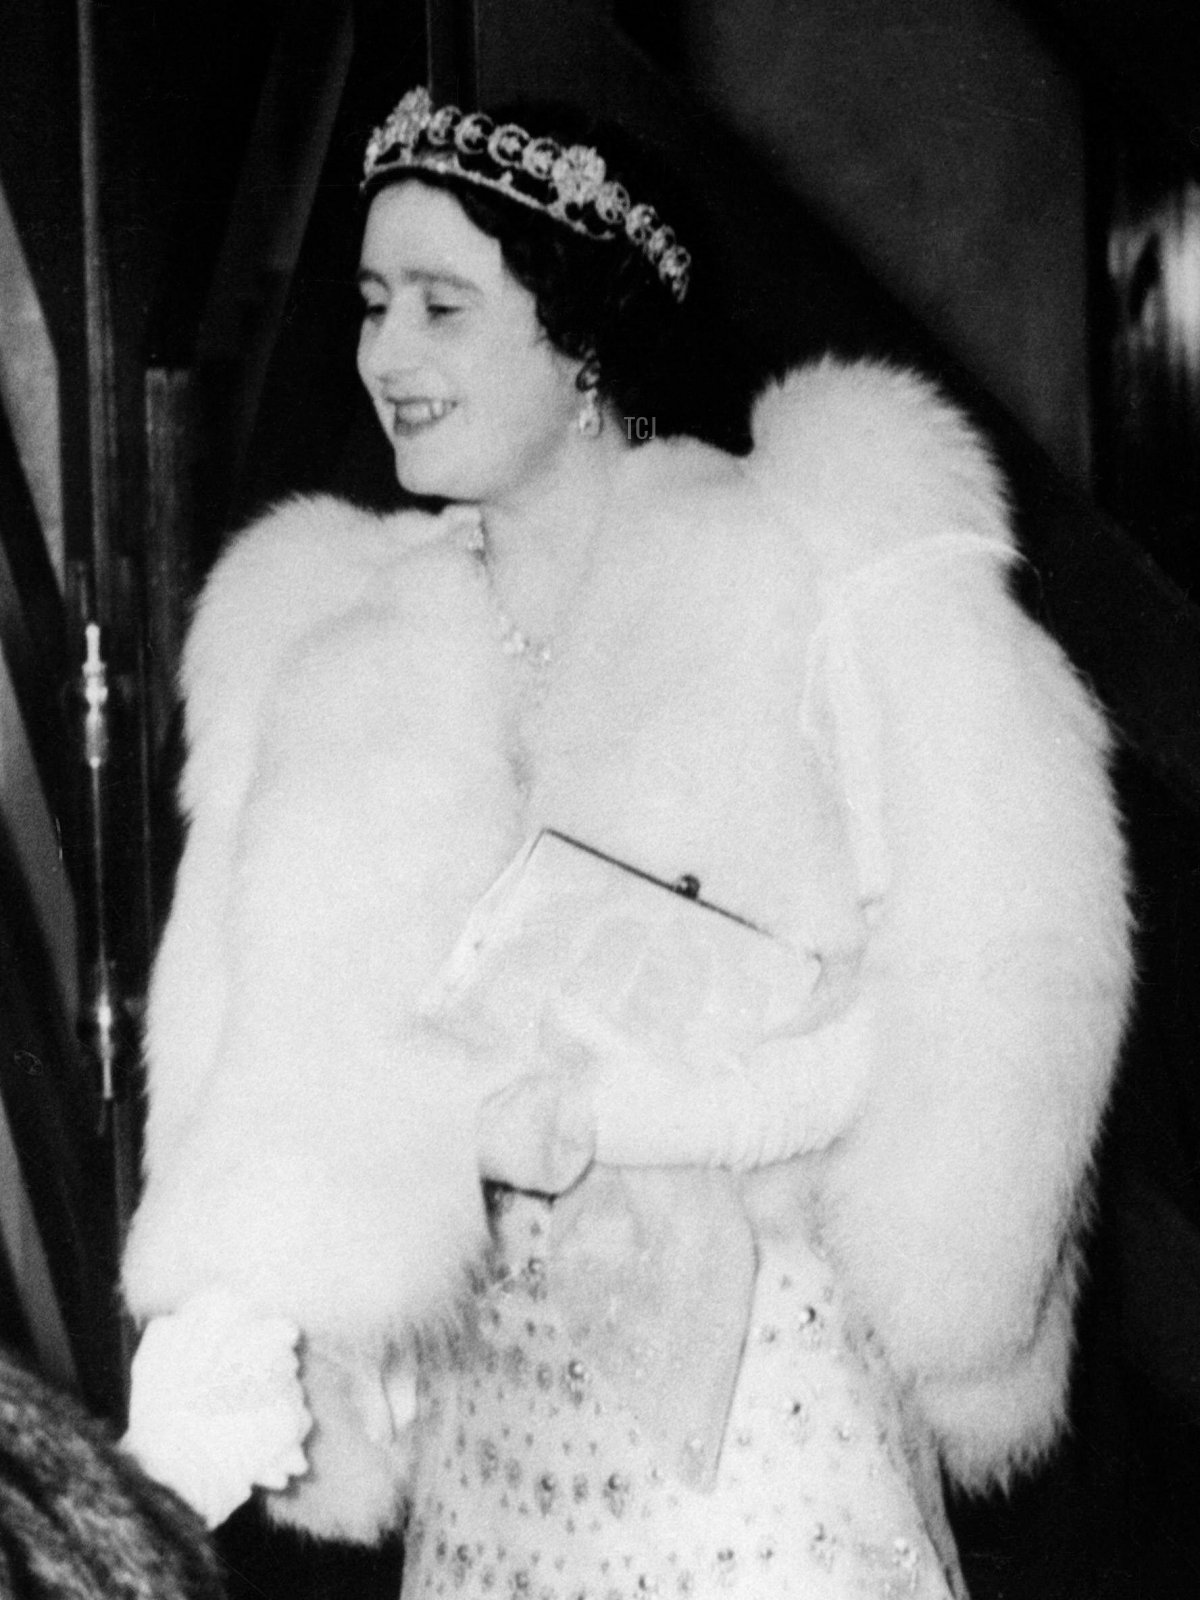 Queen Elizabeth of the United Kingdom (later the Queen Mother) wears the Teck Crescent Tiara for a performance by the Comedie Francaise at the Savoy Hotel in London, March 1939